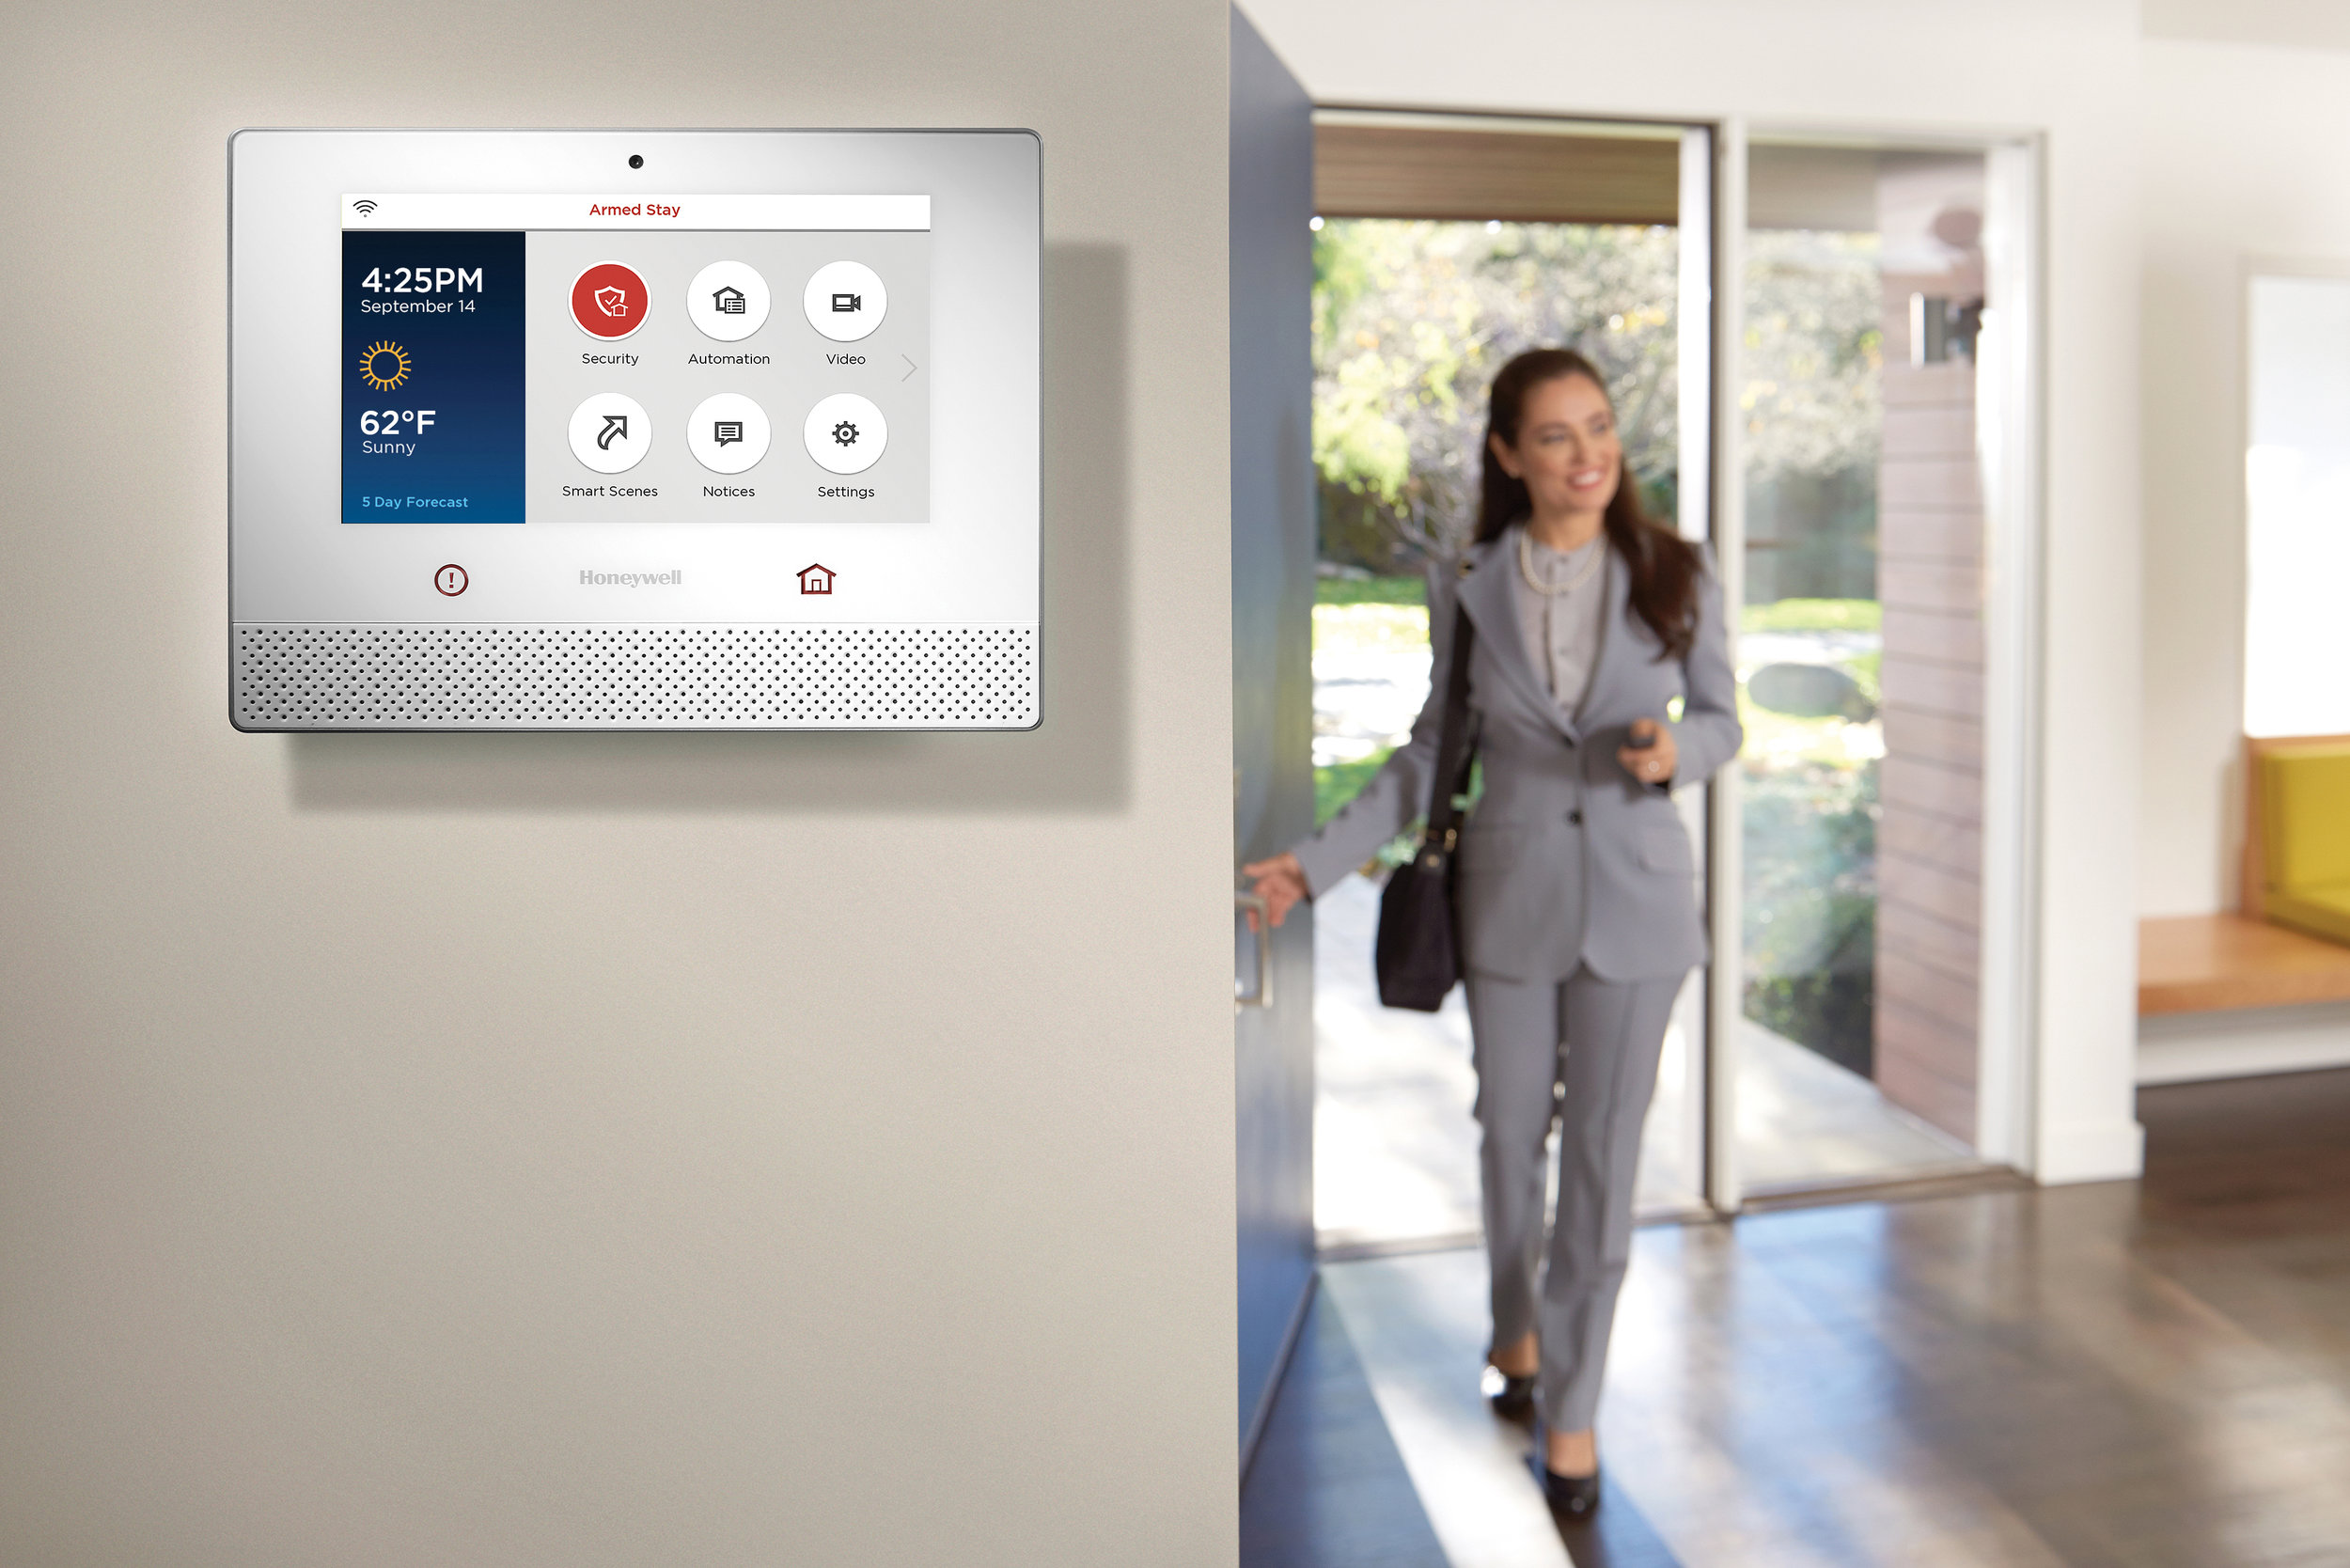 First Line of Defense - We may be a little biased, but our belief is that every business should have a security system.